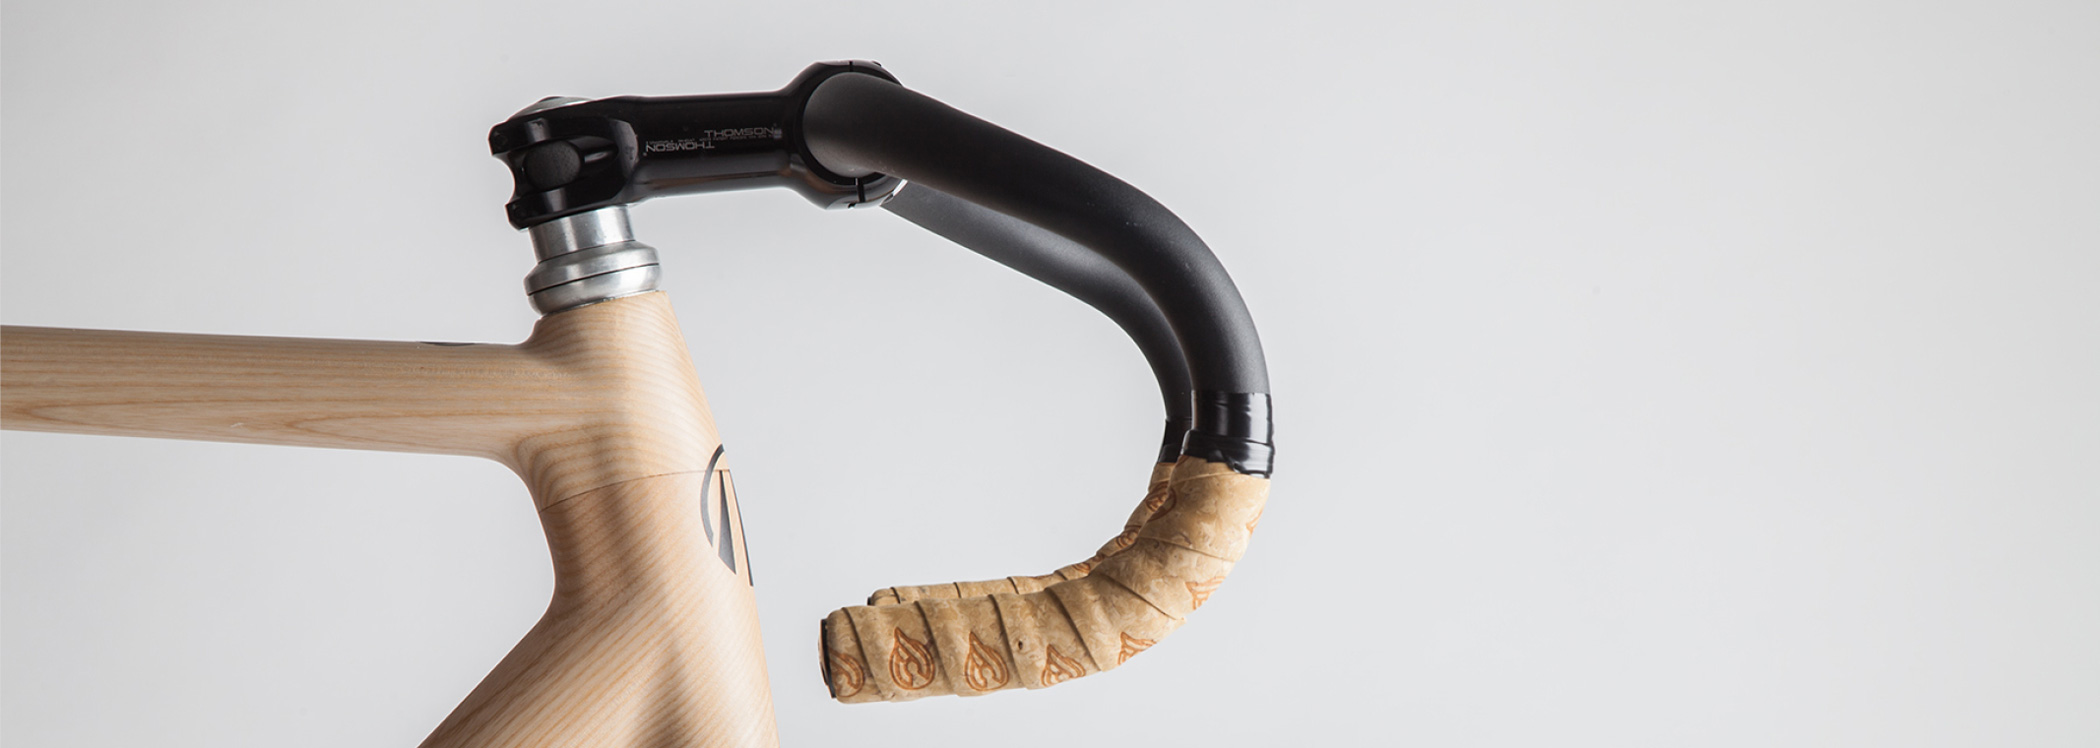 Woodelo photography production smooth finish of wooden frame and handlebars